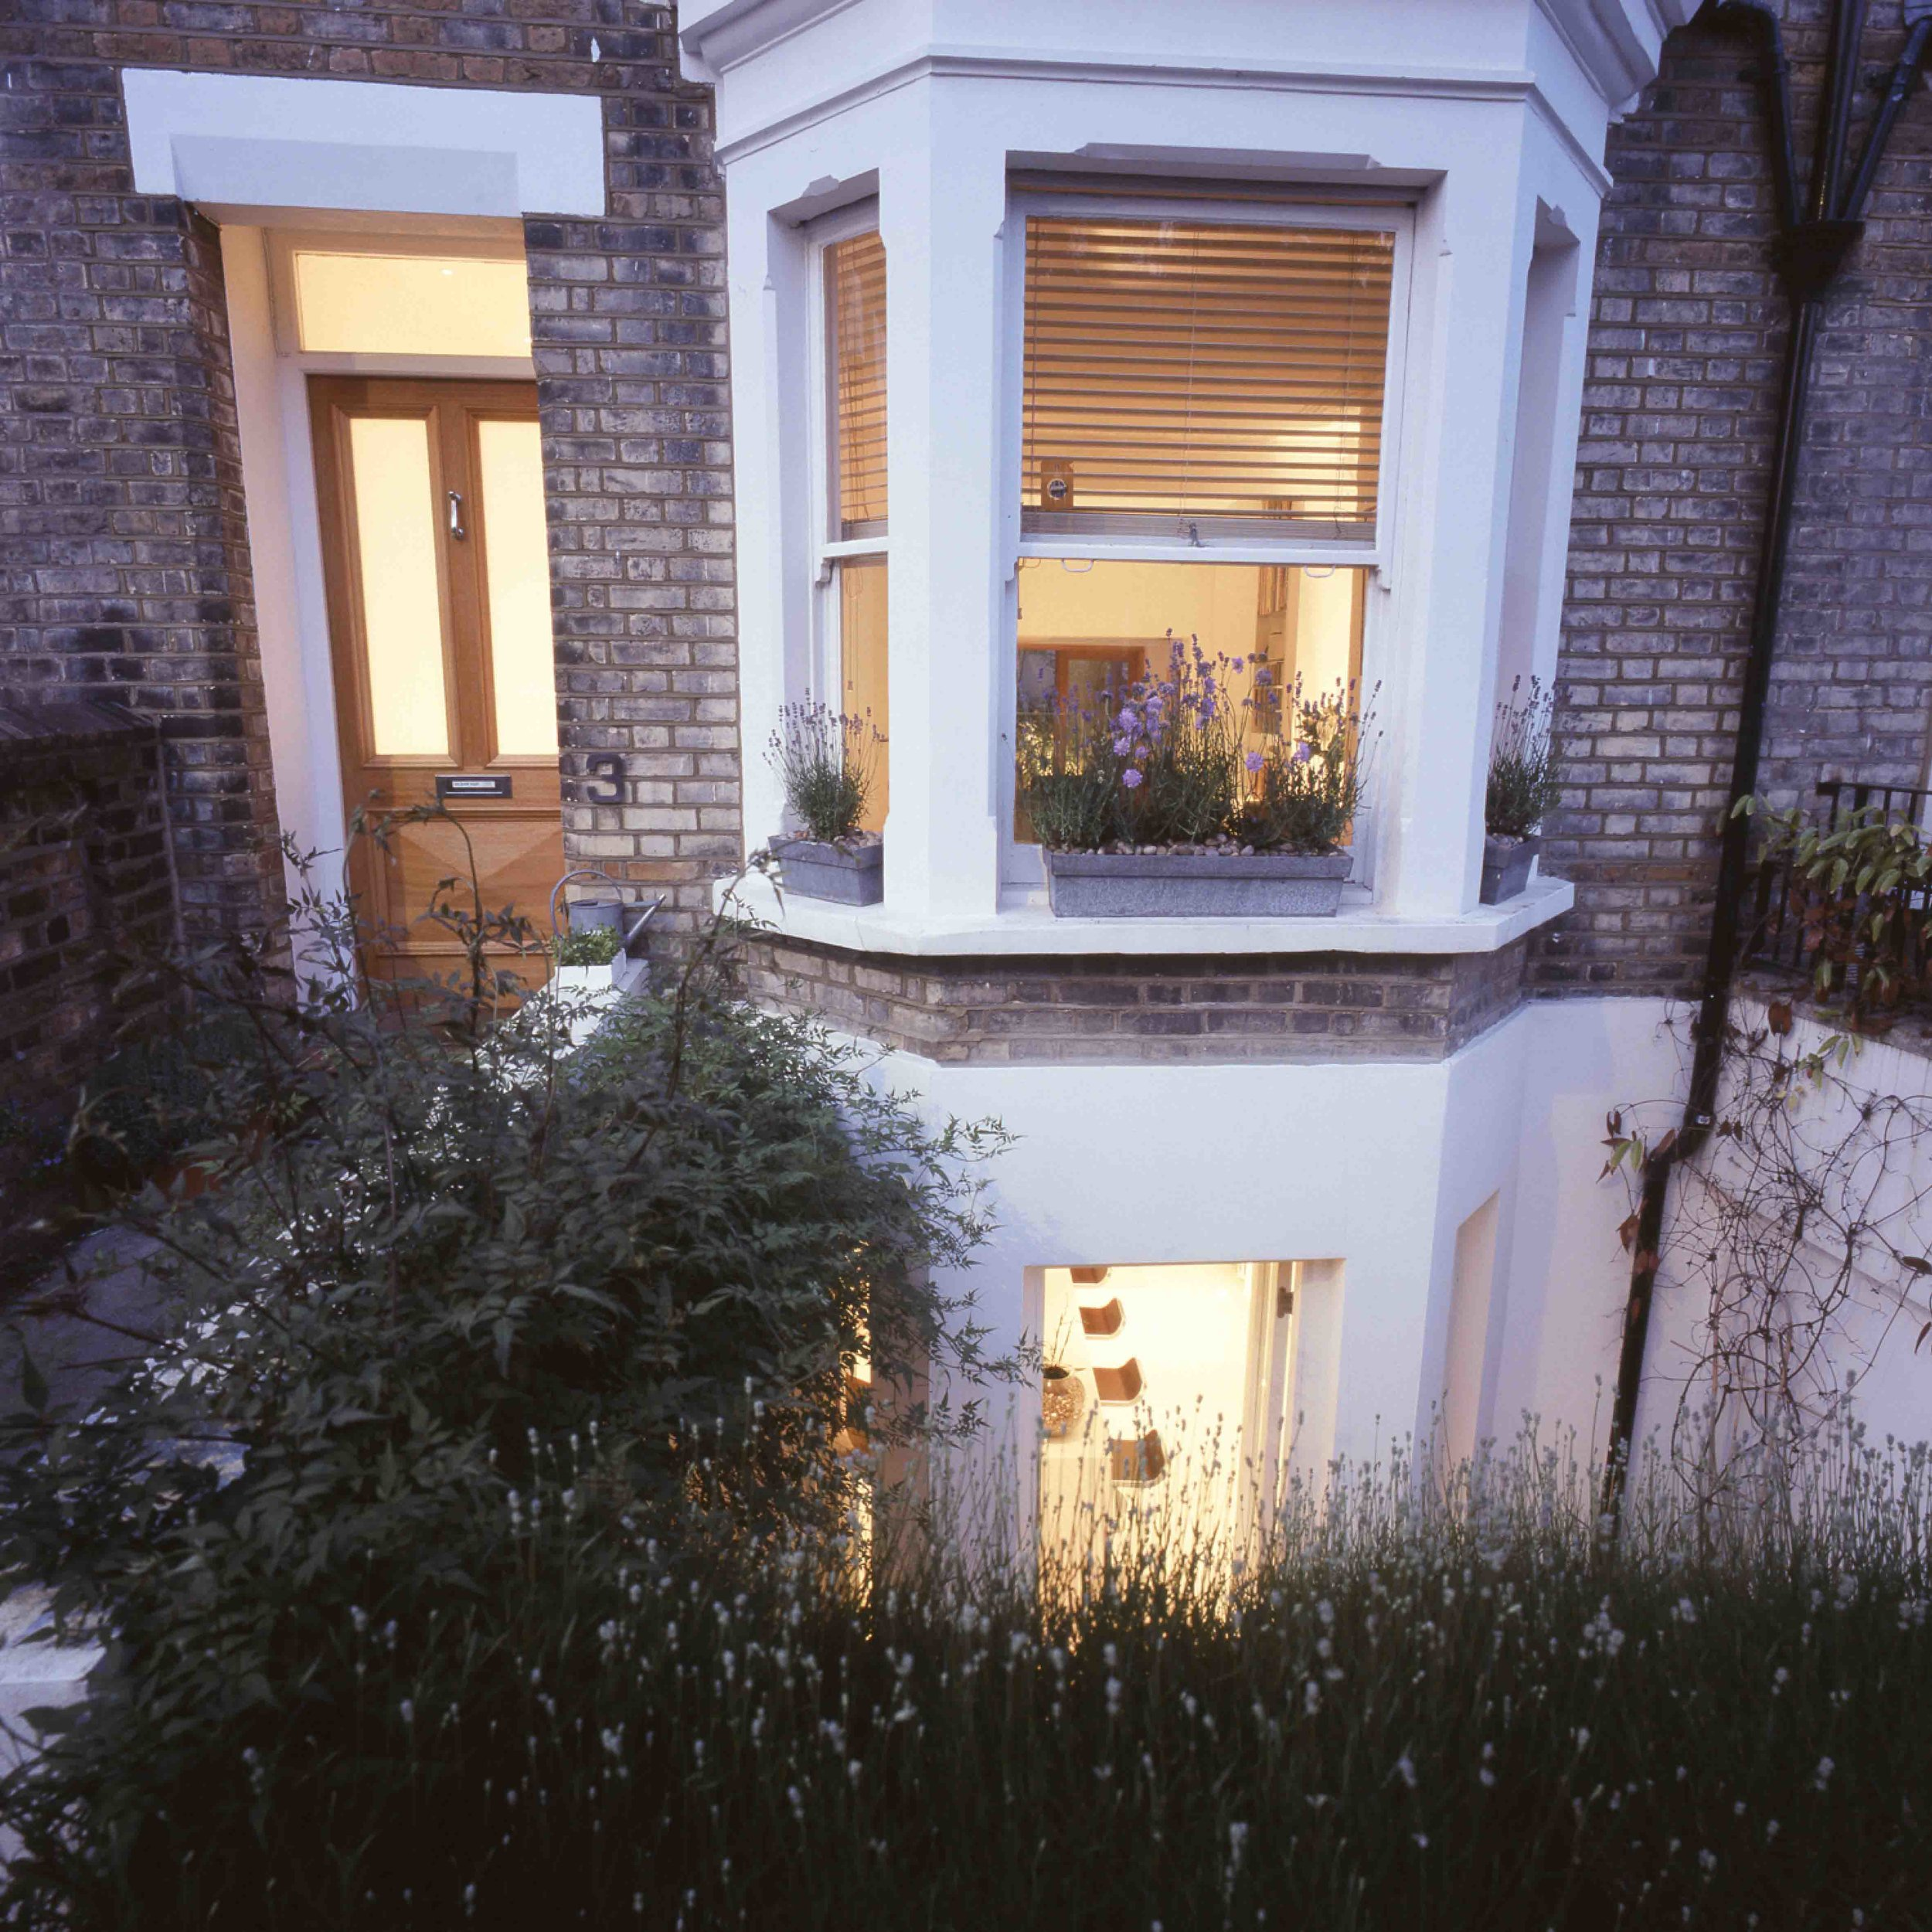 The landscaped front garden provides a green buffer to the property. It allows natural light down to the kitchen whilst also maintaining the residents privacy,